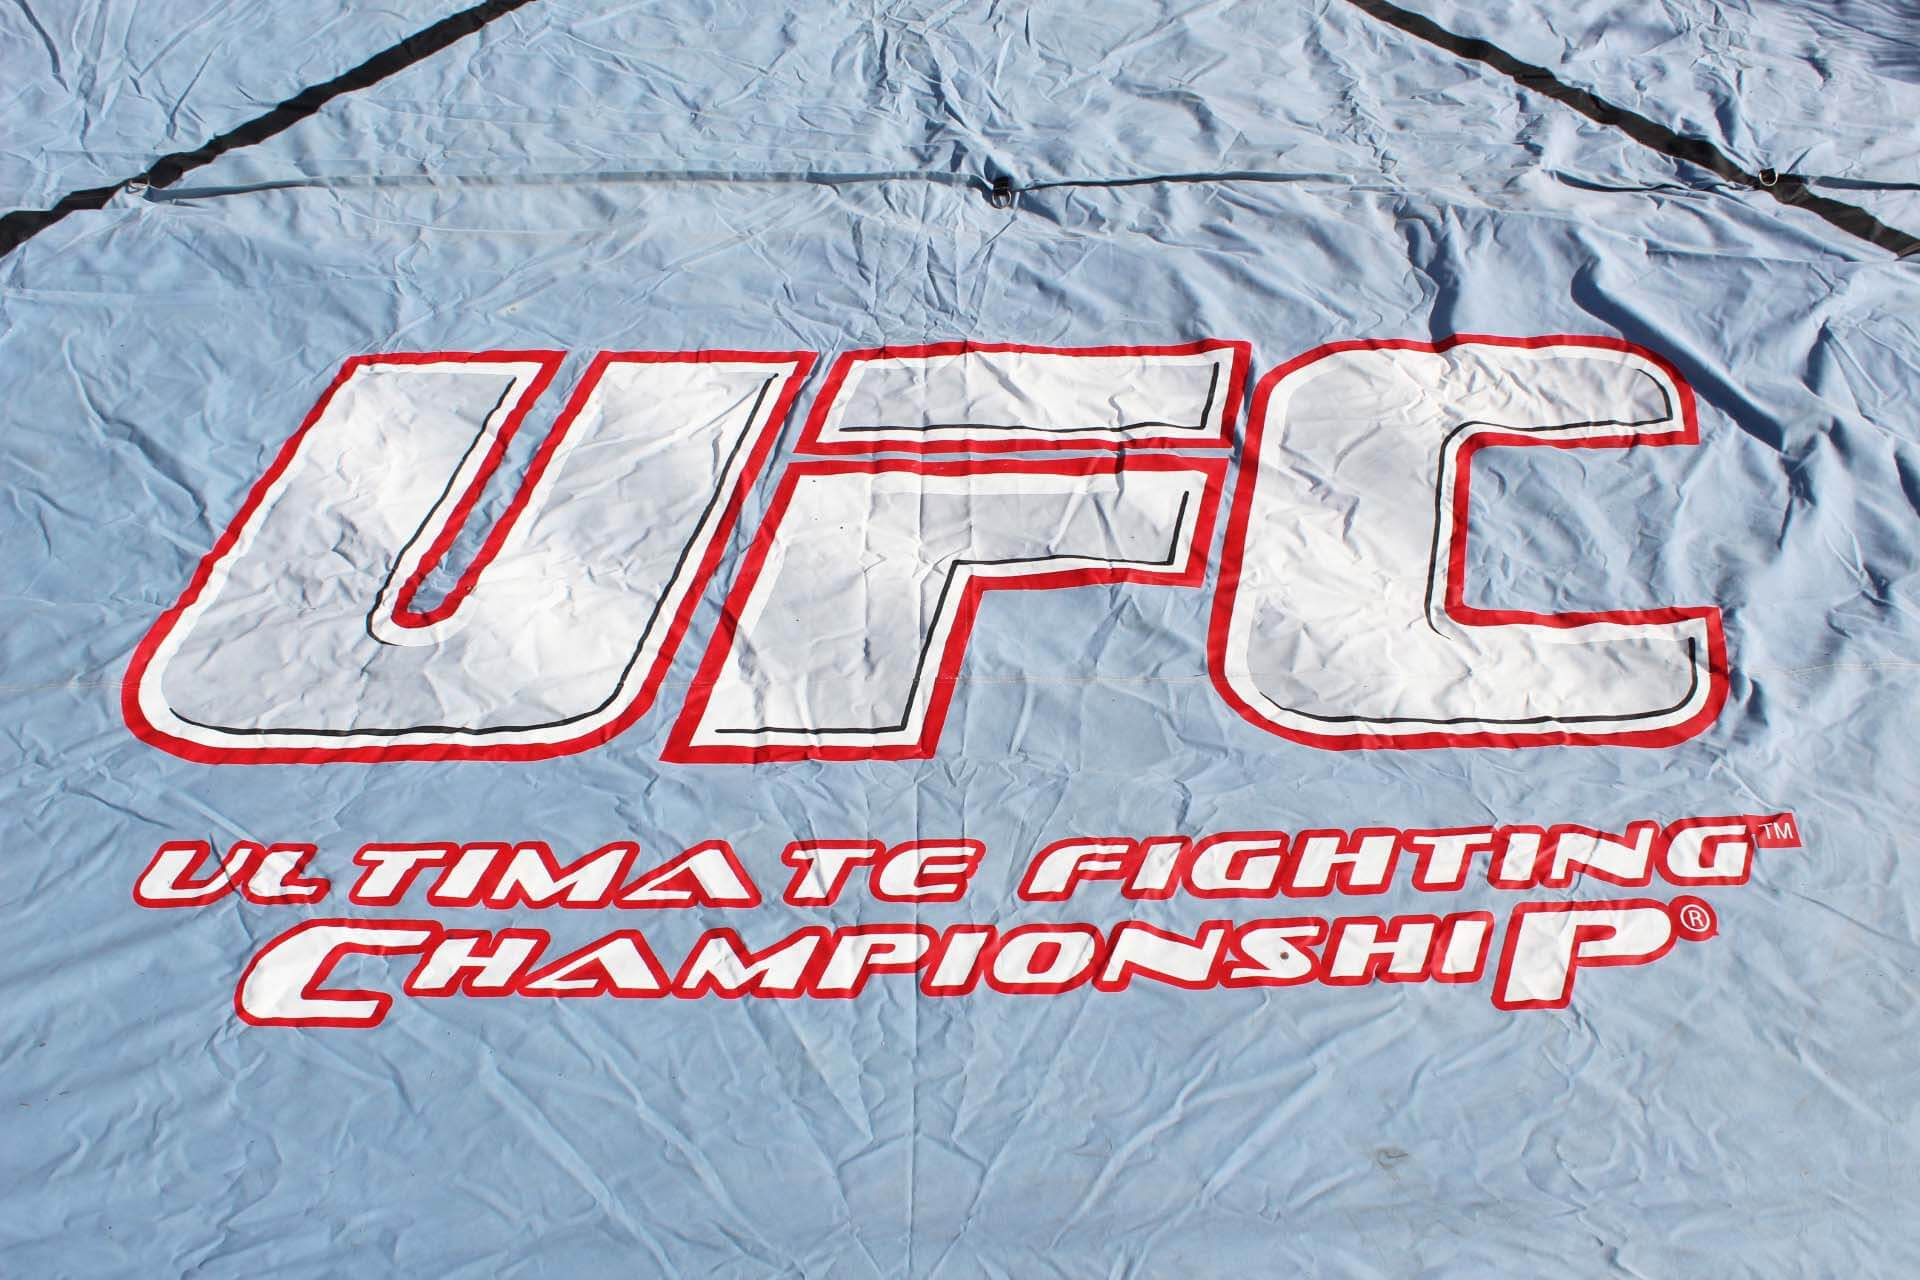 Historic UFC Octagon Fighting Canvas from Season 1 of The Ultimate Fighter (TUF) Reality Show- Big John McCarthy